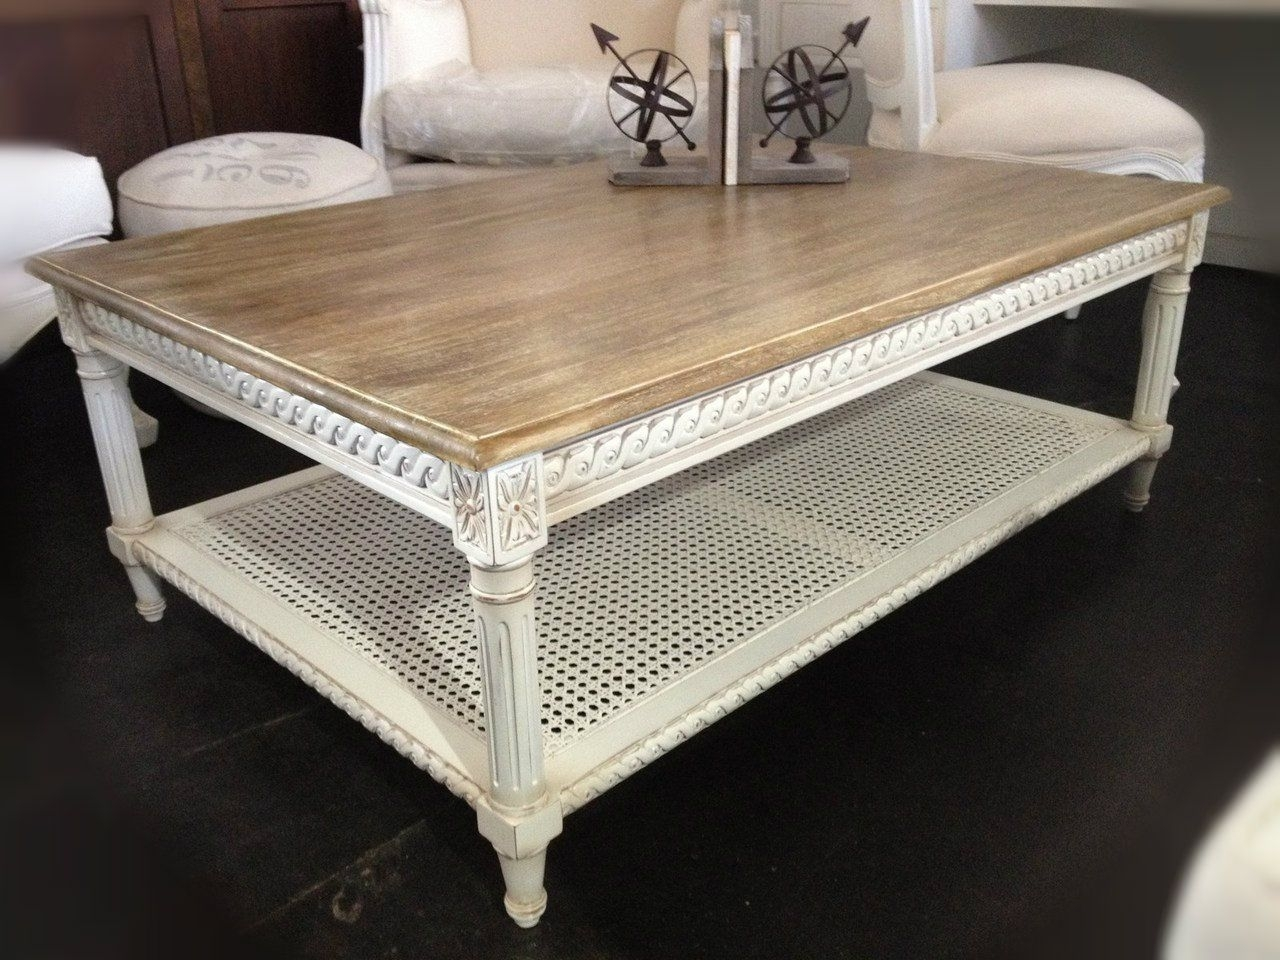 Hamptons Rattan Coffee Table - Distressed White With Limewash Top intended for Limewash Coffee Tables (Image 7 of 30)